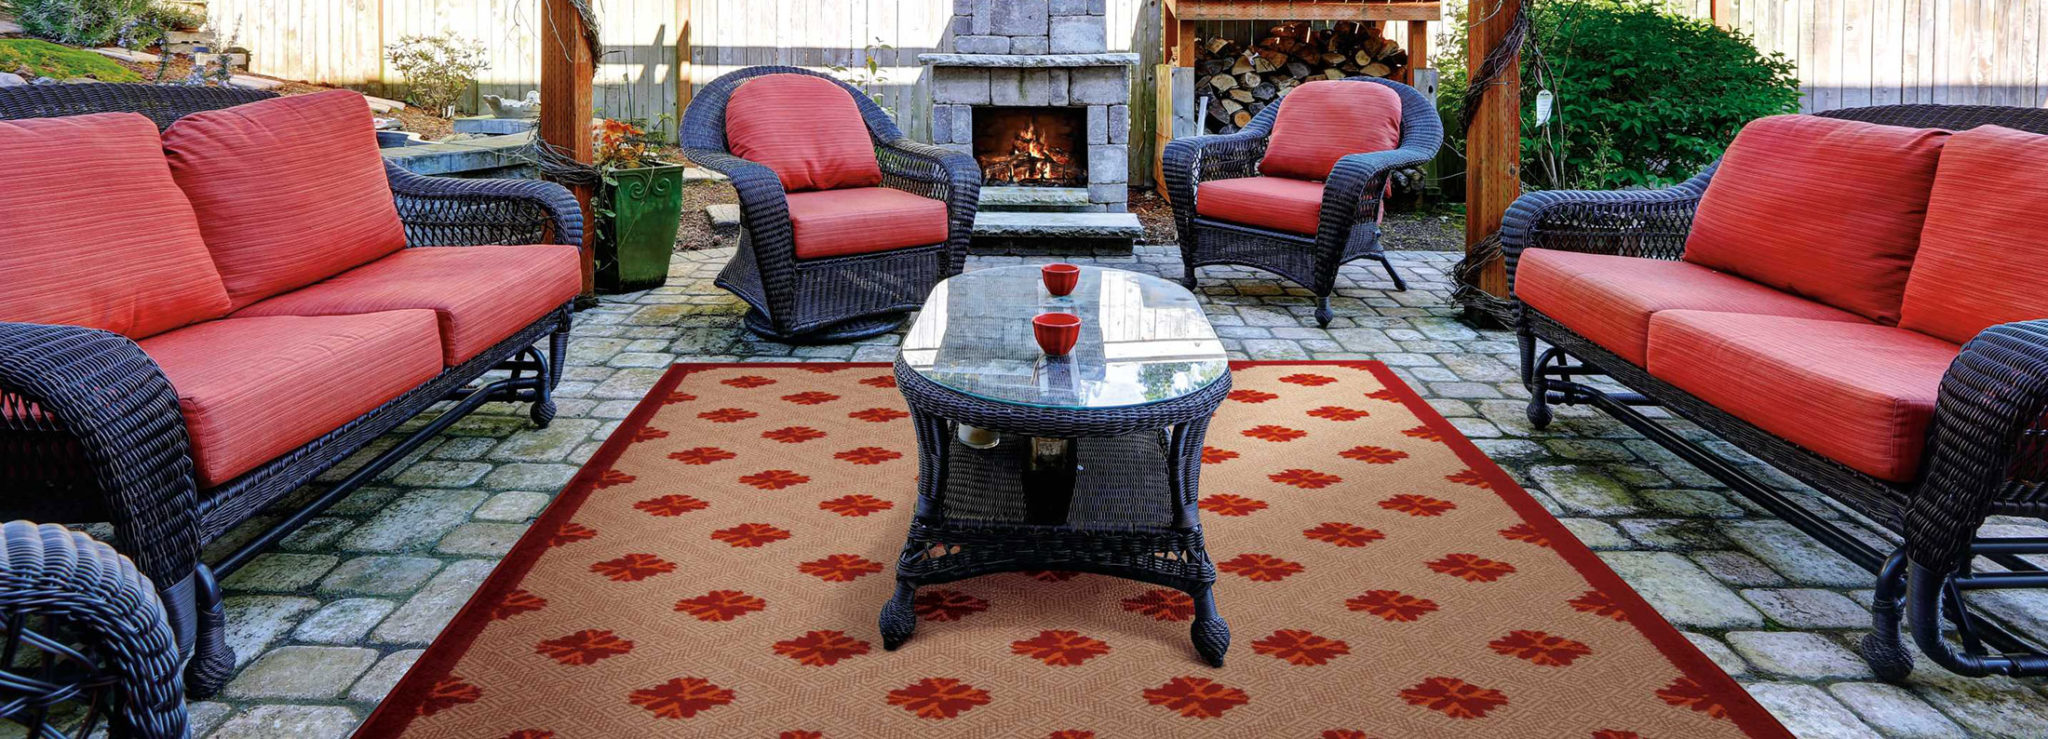 Does My Outdoor Furniture Need An Outdoor Rug?